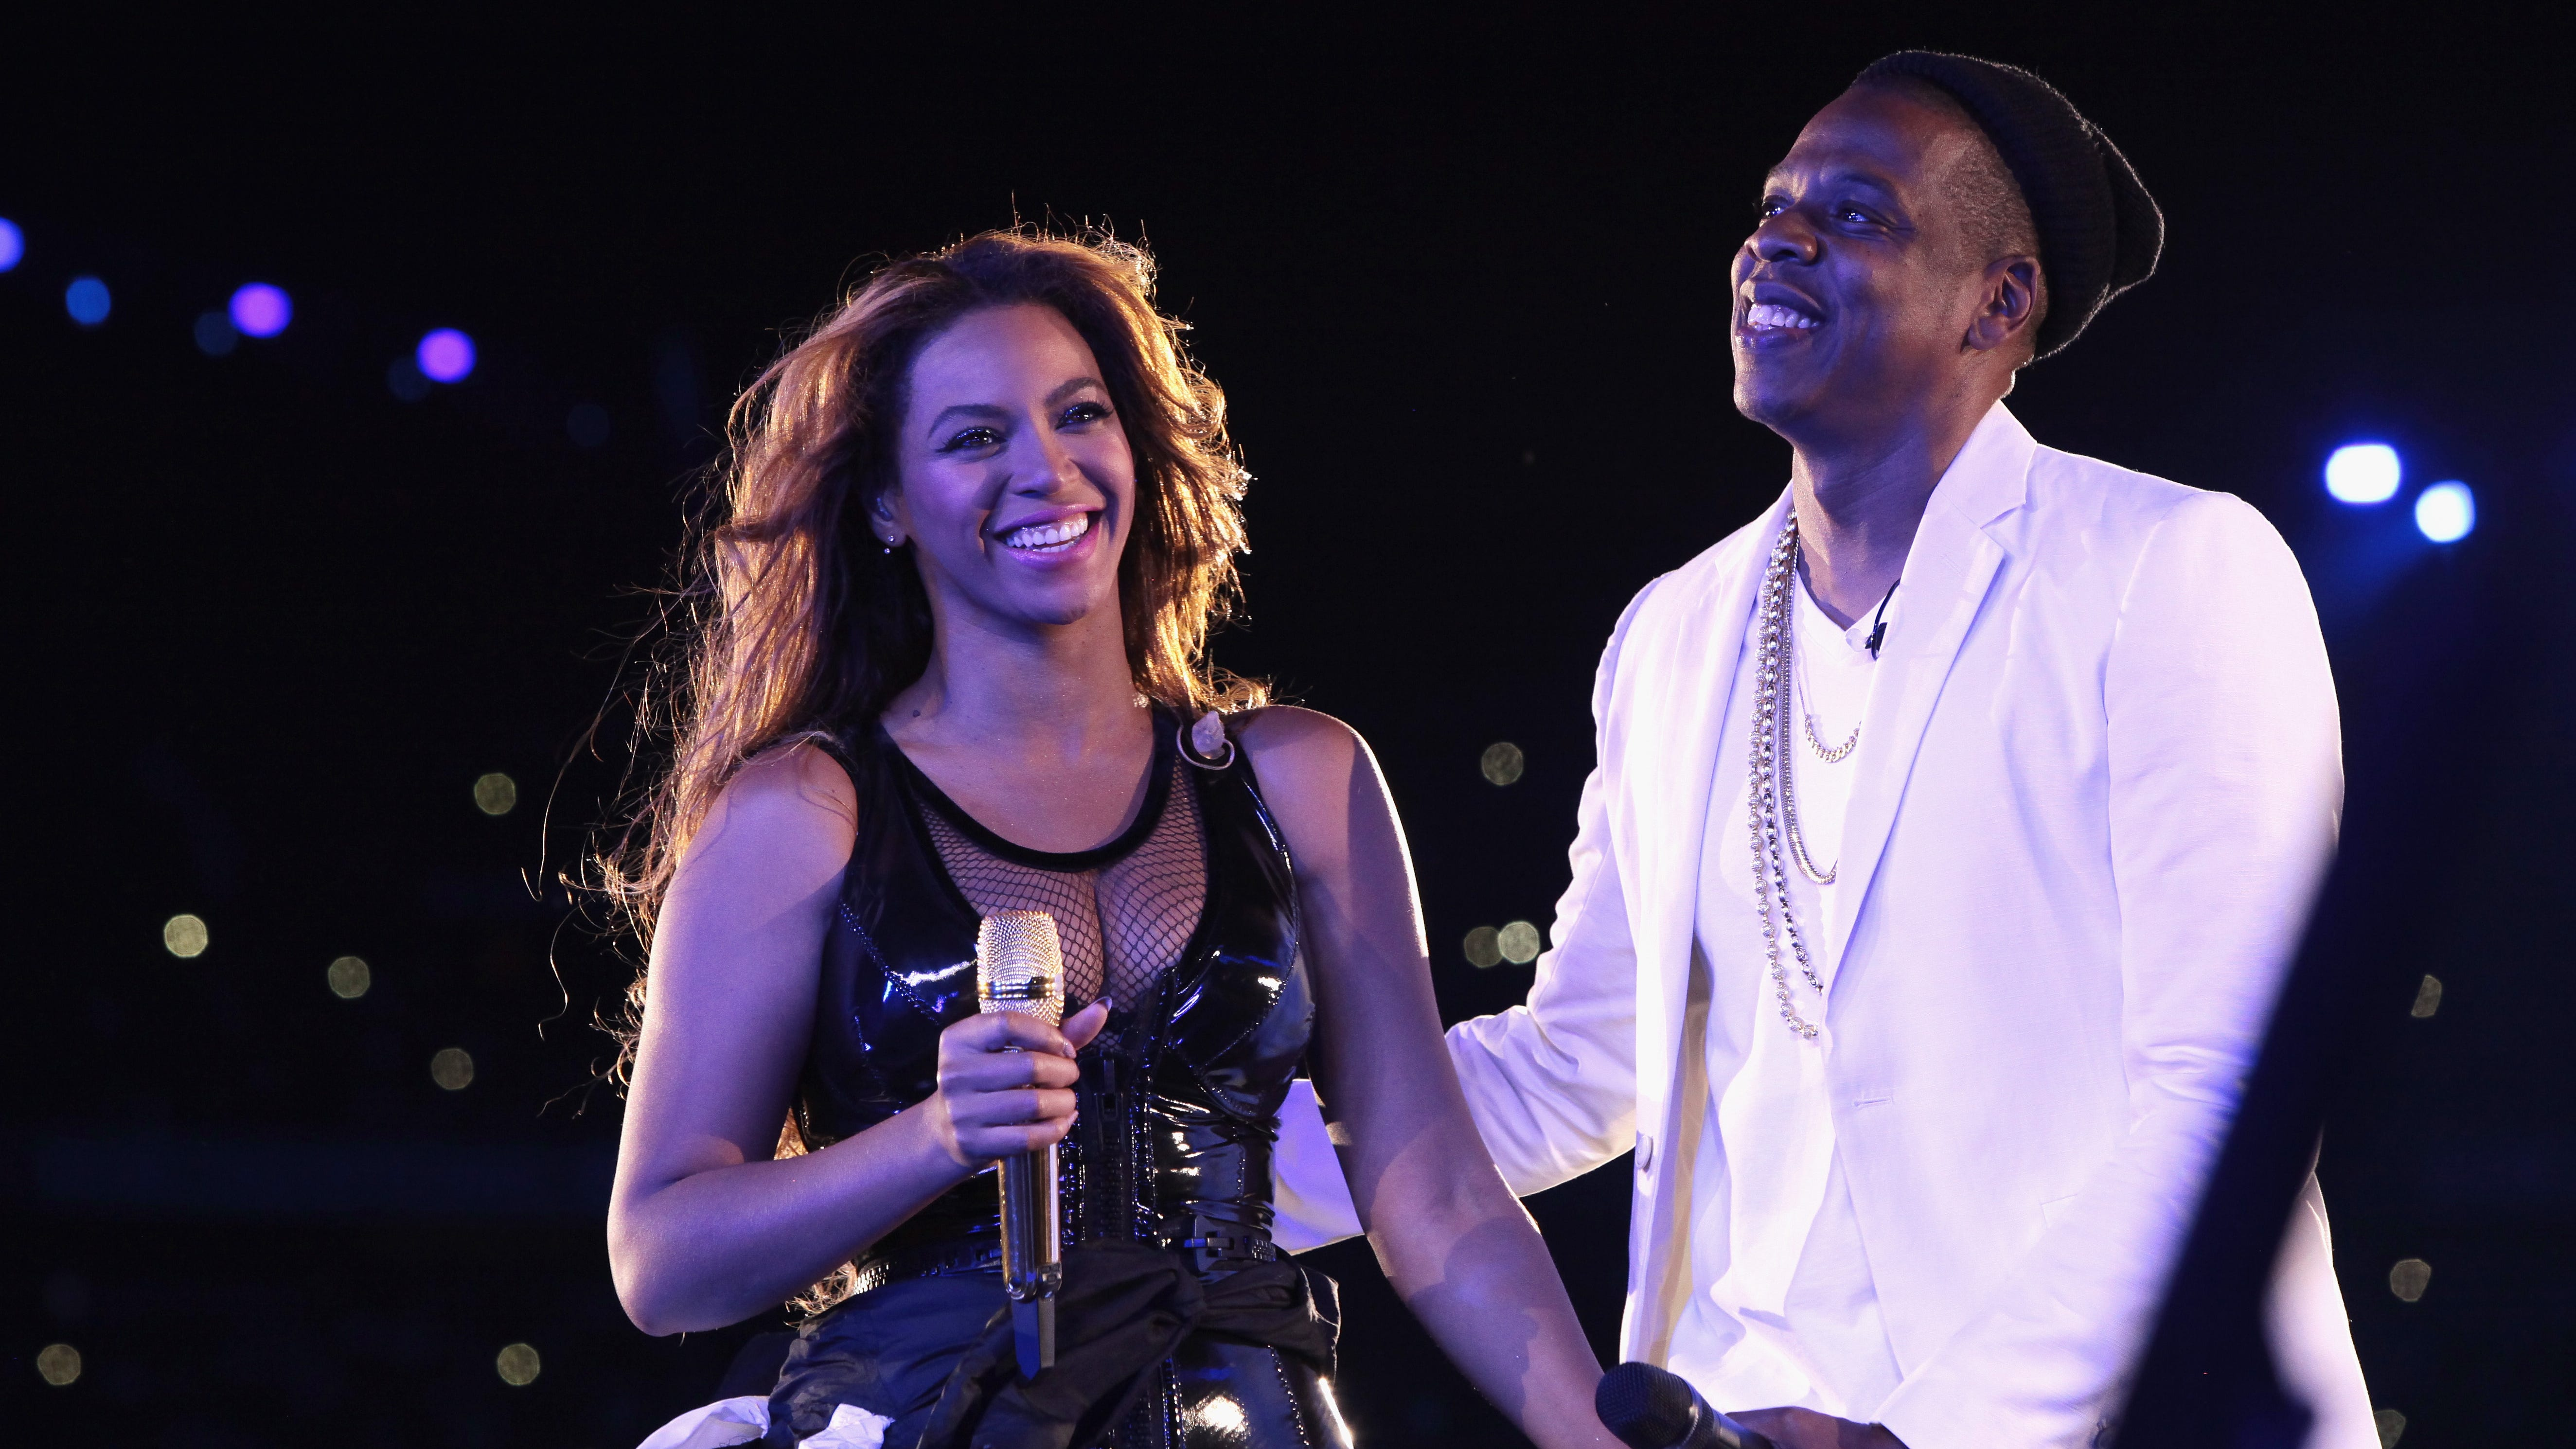 Beyonce wows at private performance in Los Angeles as Kanye's antics hang in the air